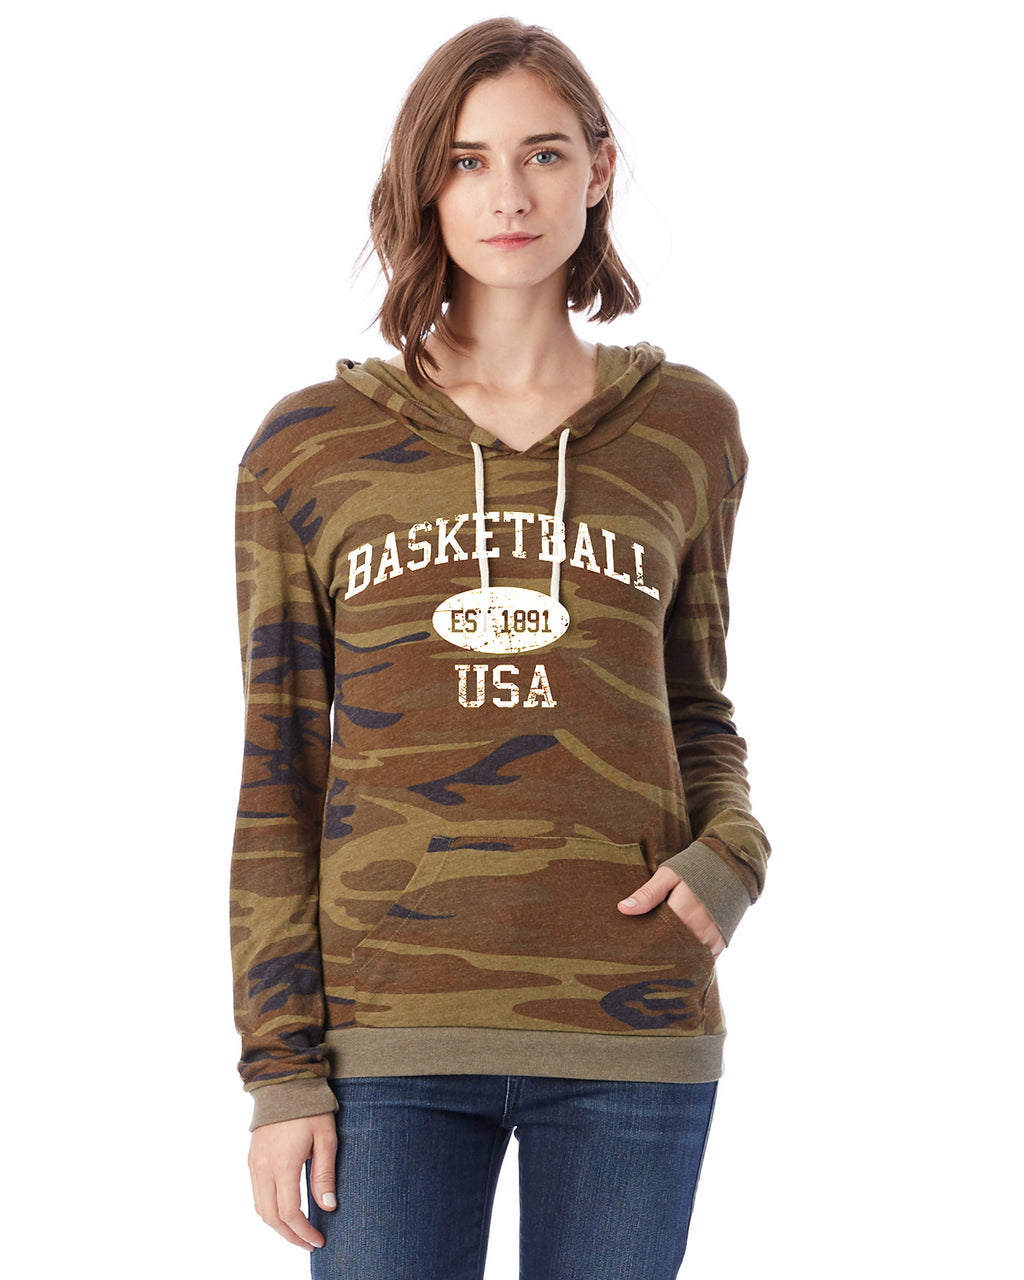 Basketball Eco Jersey Pullover Hoodie-Vintage Distressed Established Date USA